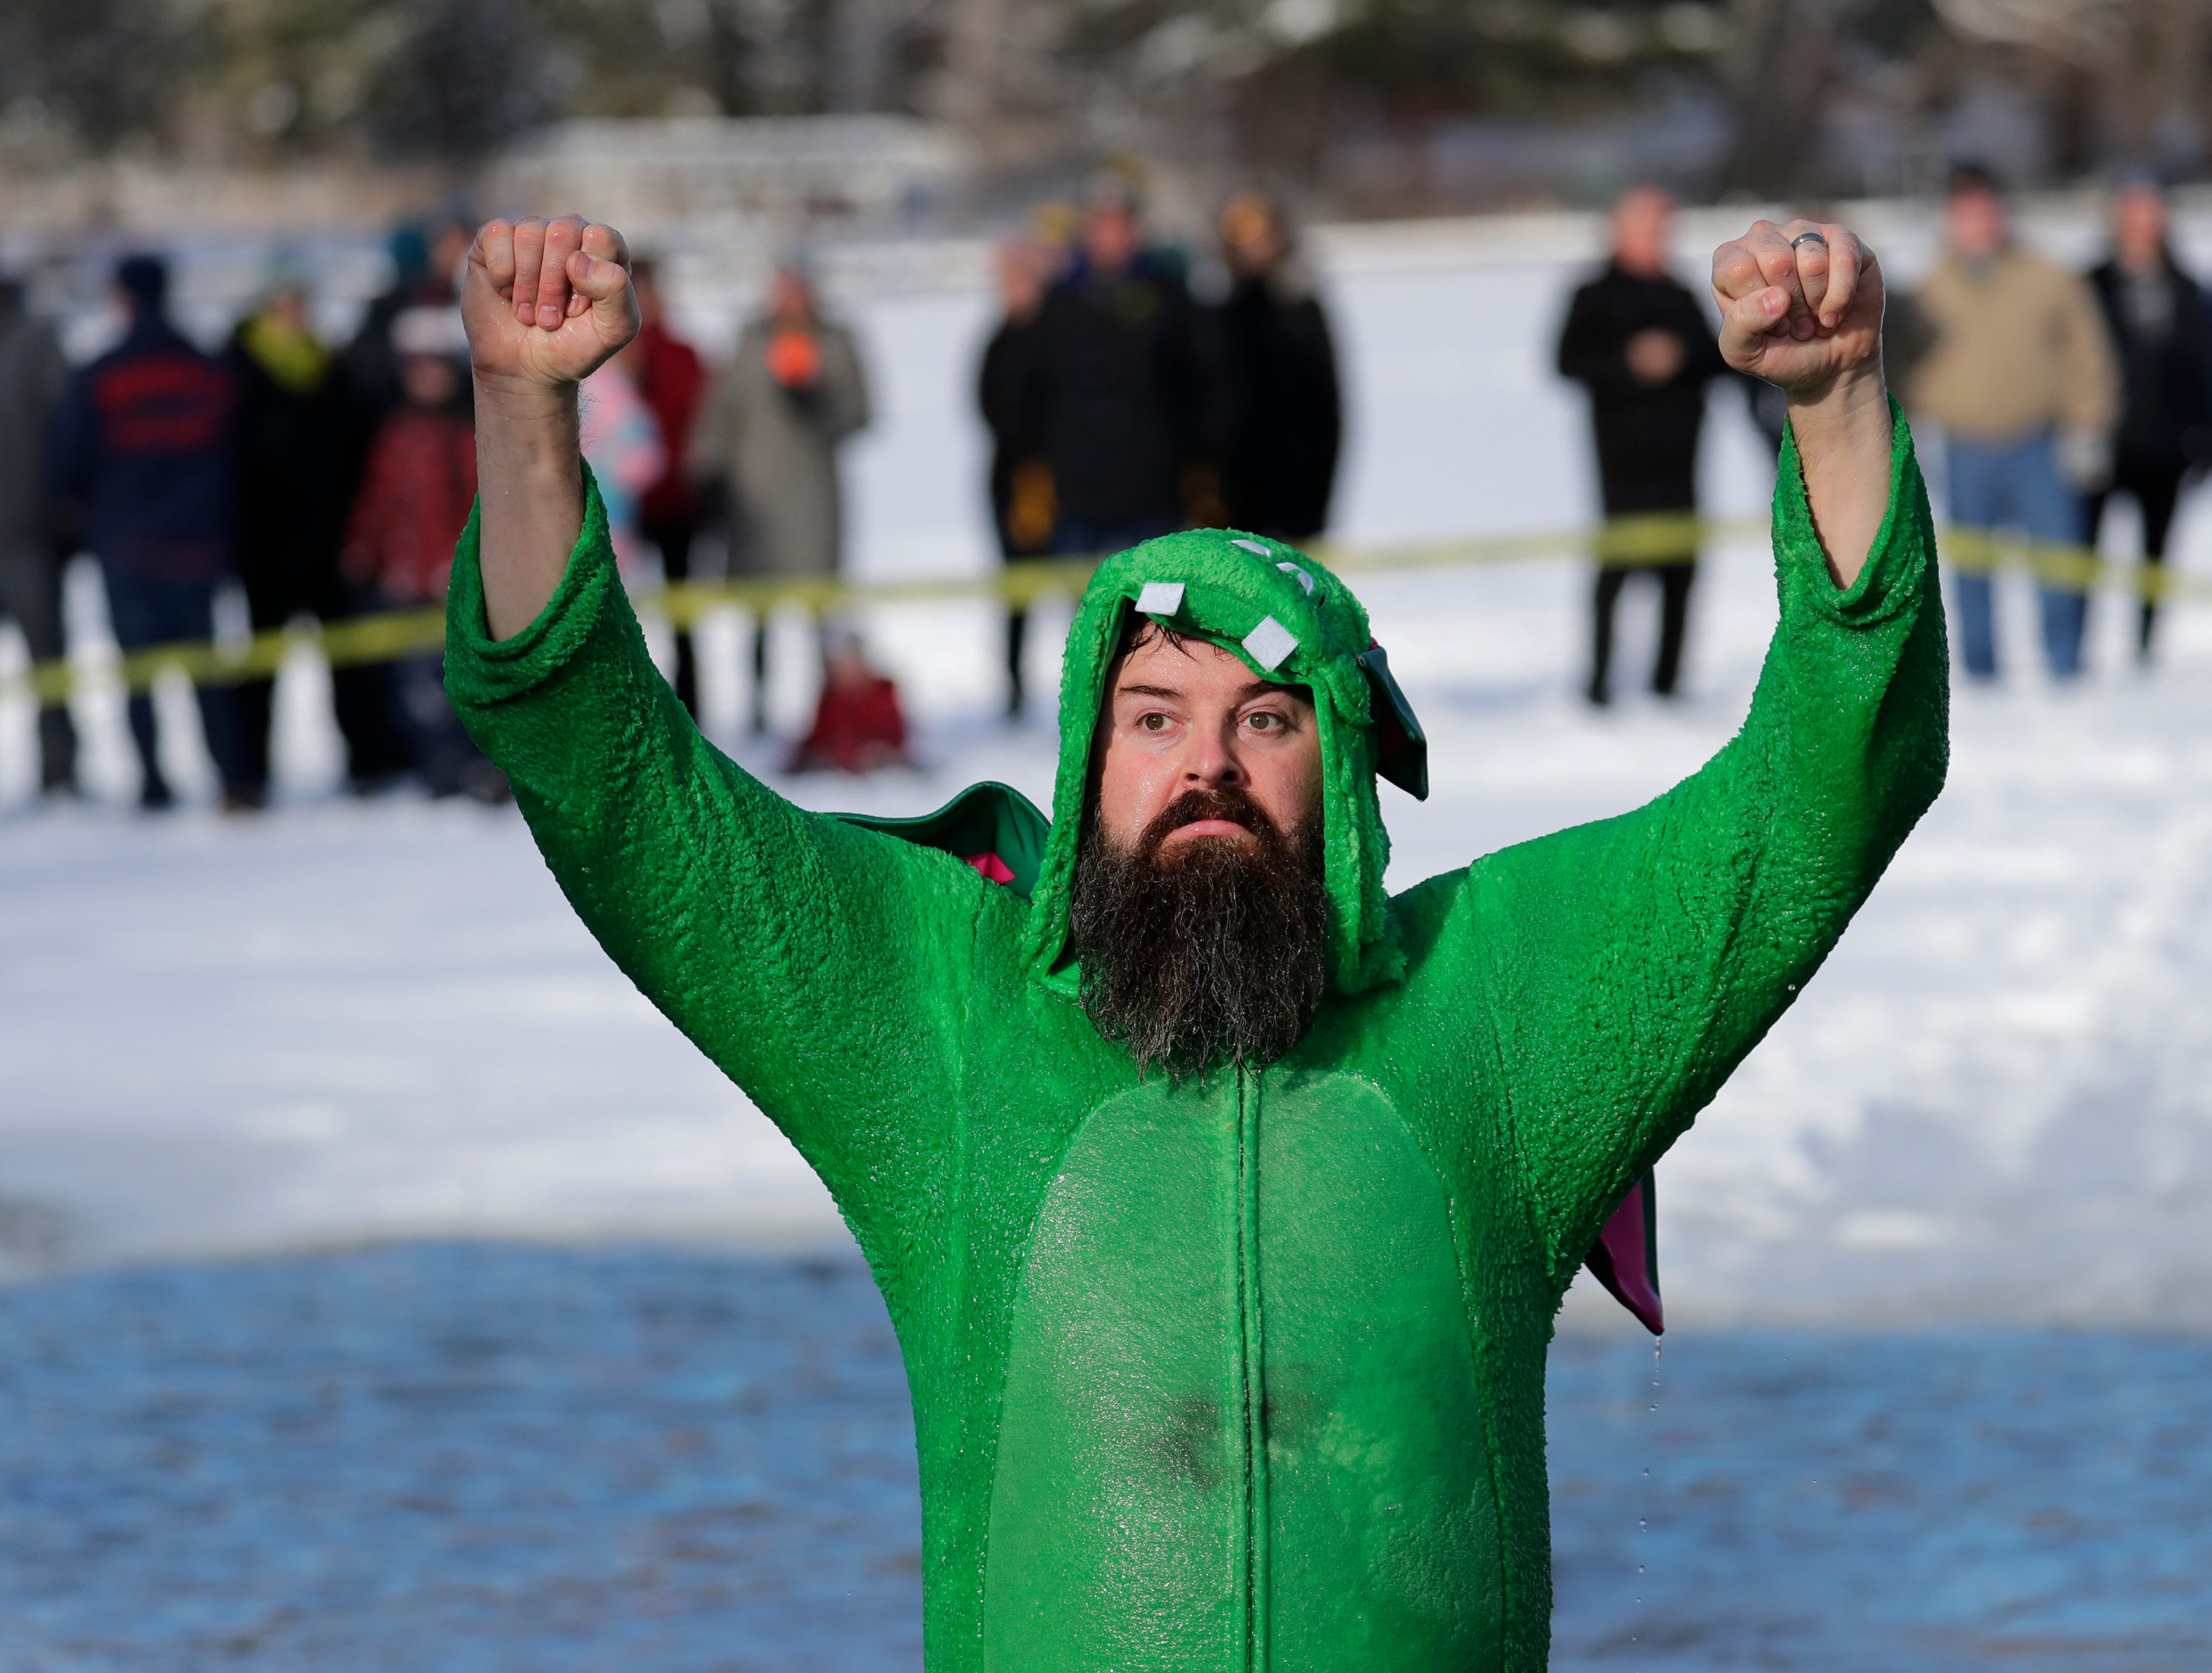 Danny Fili of Waupaca celebrates after jumping into frigid water during the Polar Bear Plunge Tuesday, January 1, 2019, at Becker Marine on Lime Kiln Lake in Waupaca, Wis. Dan Powers/USA TODAY NETWORK-Wisconsin